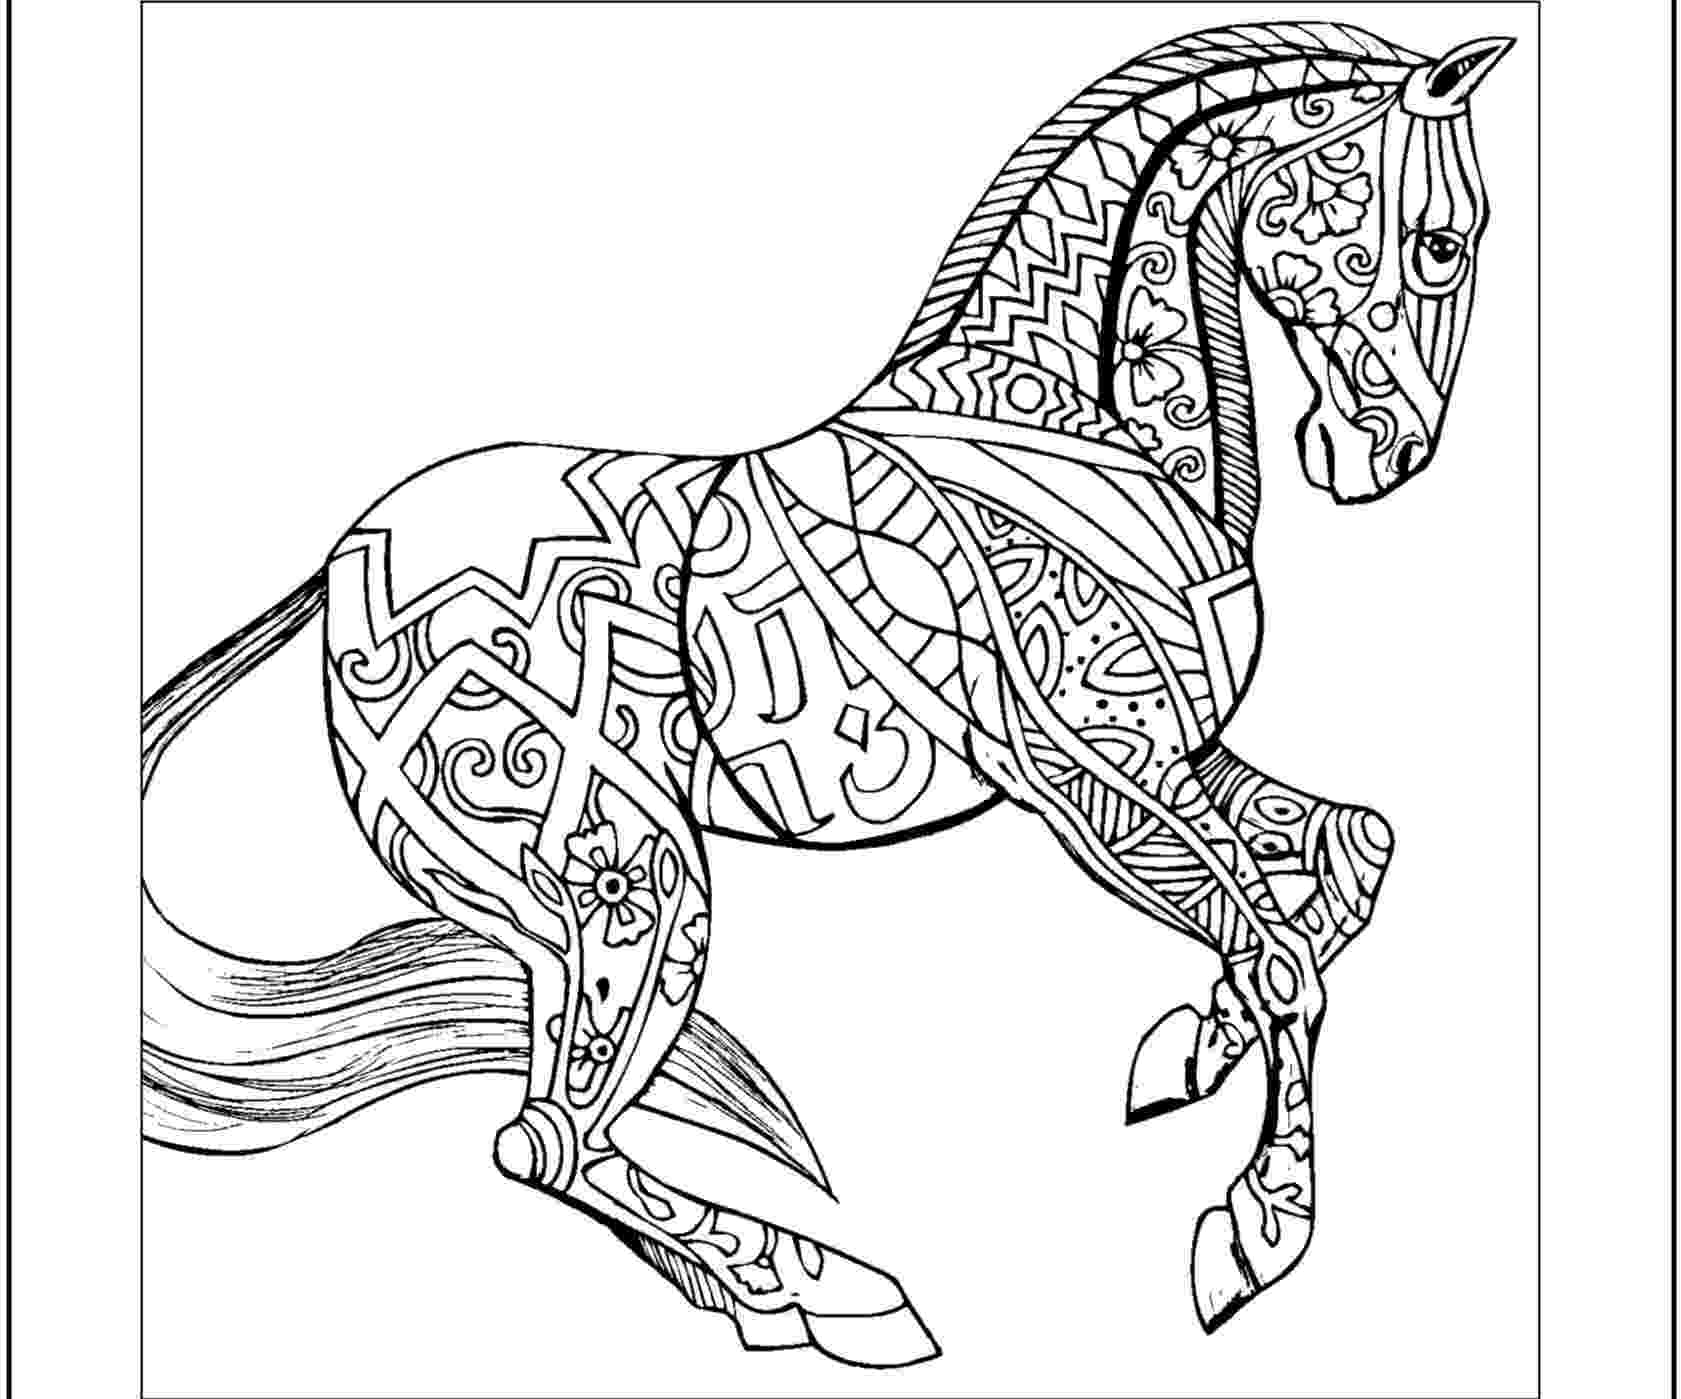 coloring pages of animals horses animal coloring pages for adults best coloring pages for of pages animals horses coloring